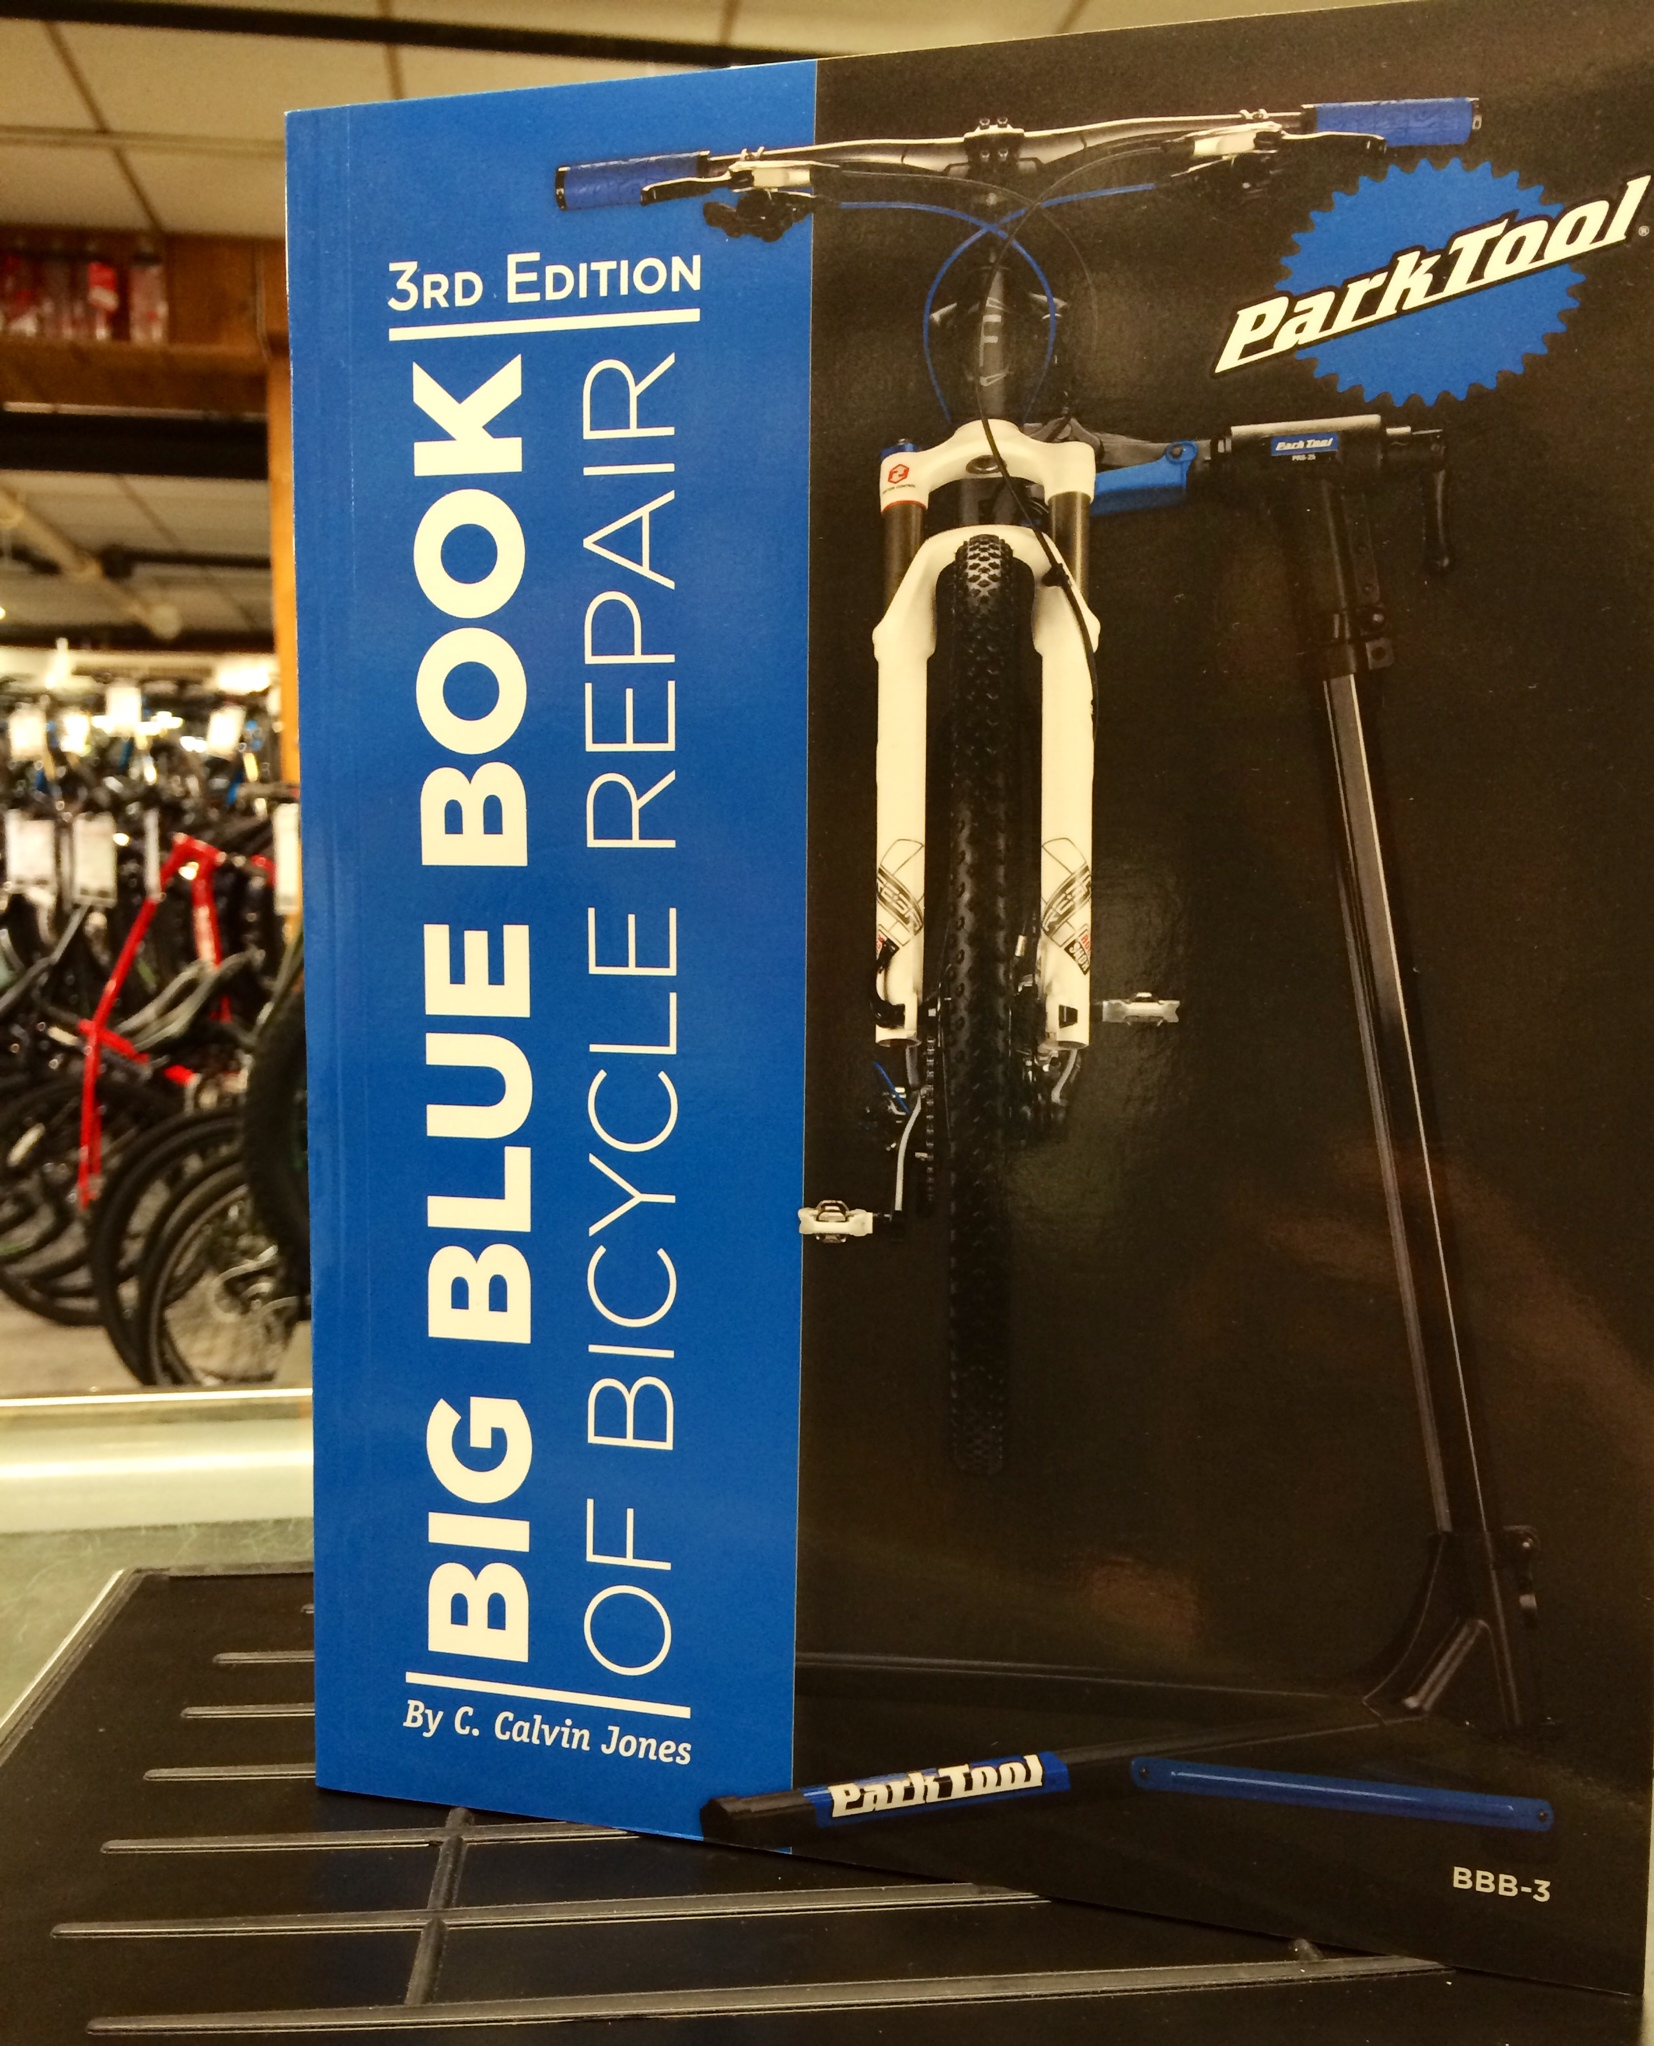 The park tool big blue book is a thorough bicycle repair book makes a great holiday gift